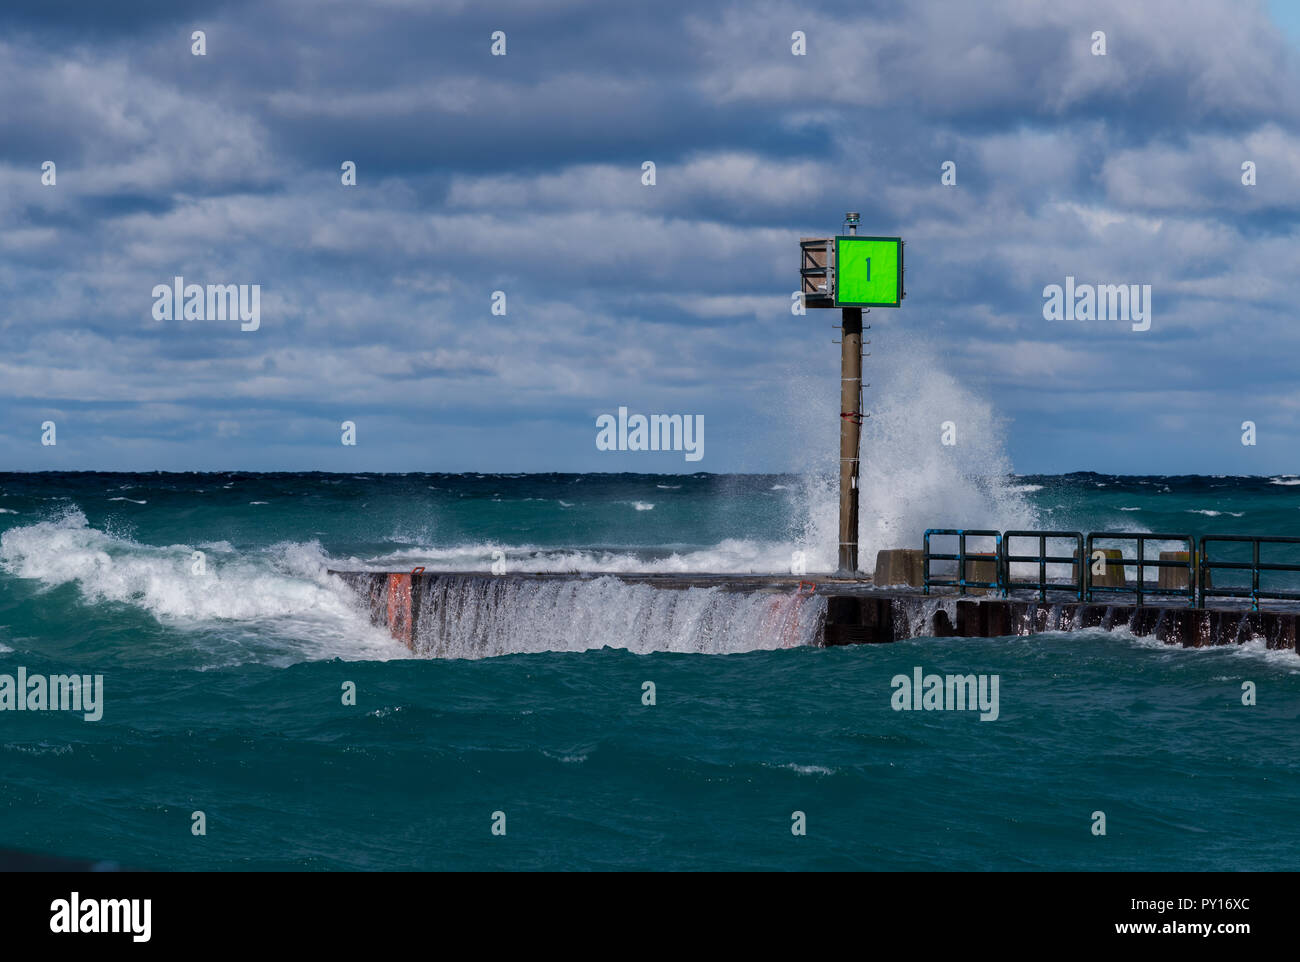 Waves breaking on Marker #1 on the pier in Charlevoix, Michigan, USA. - Stock Image